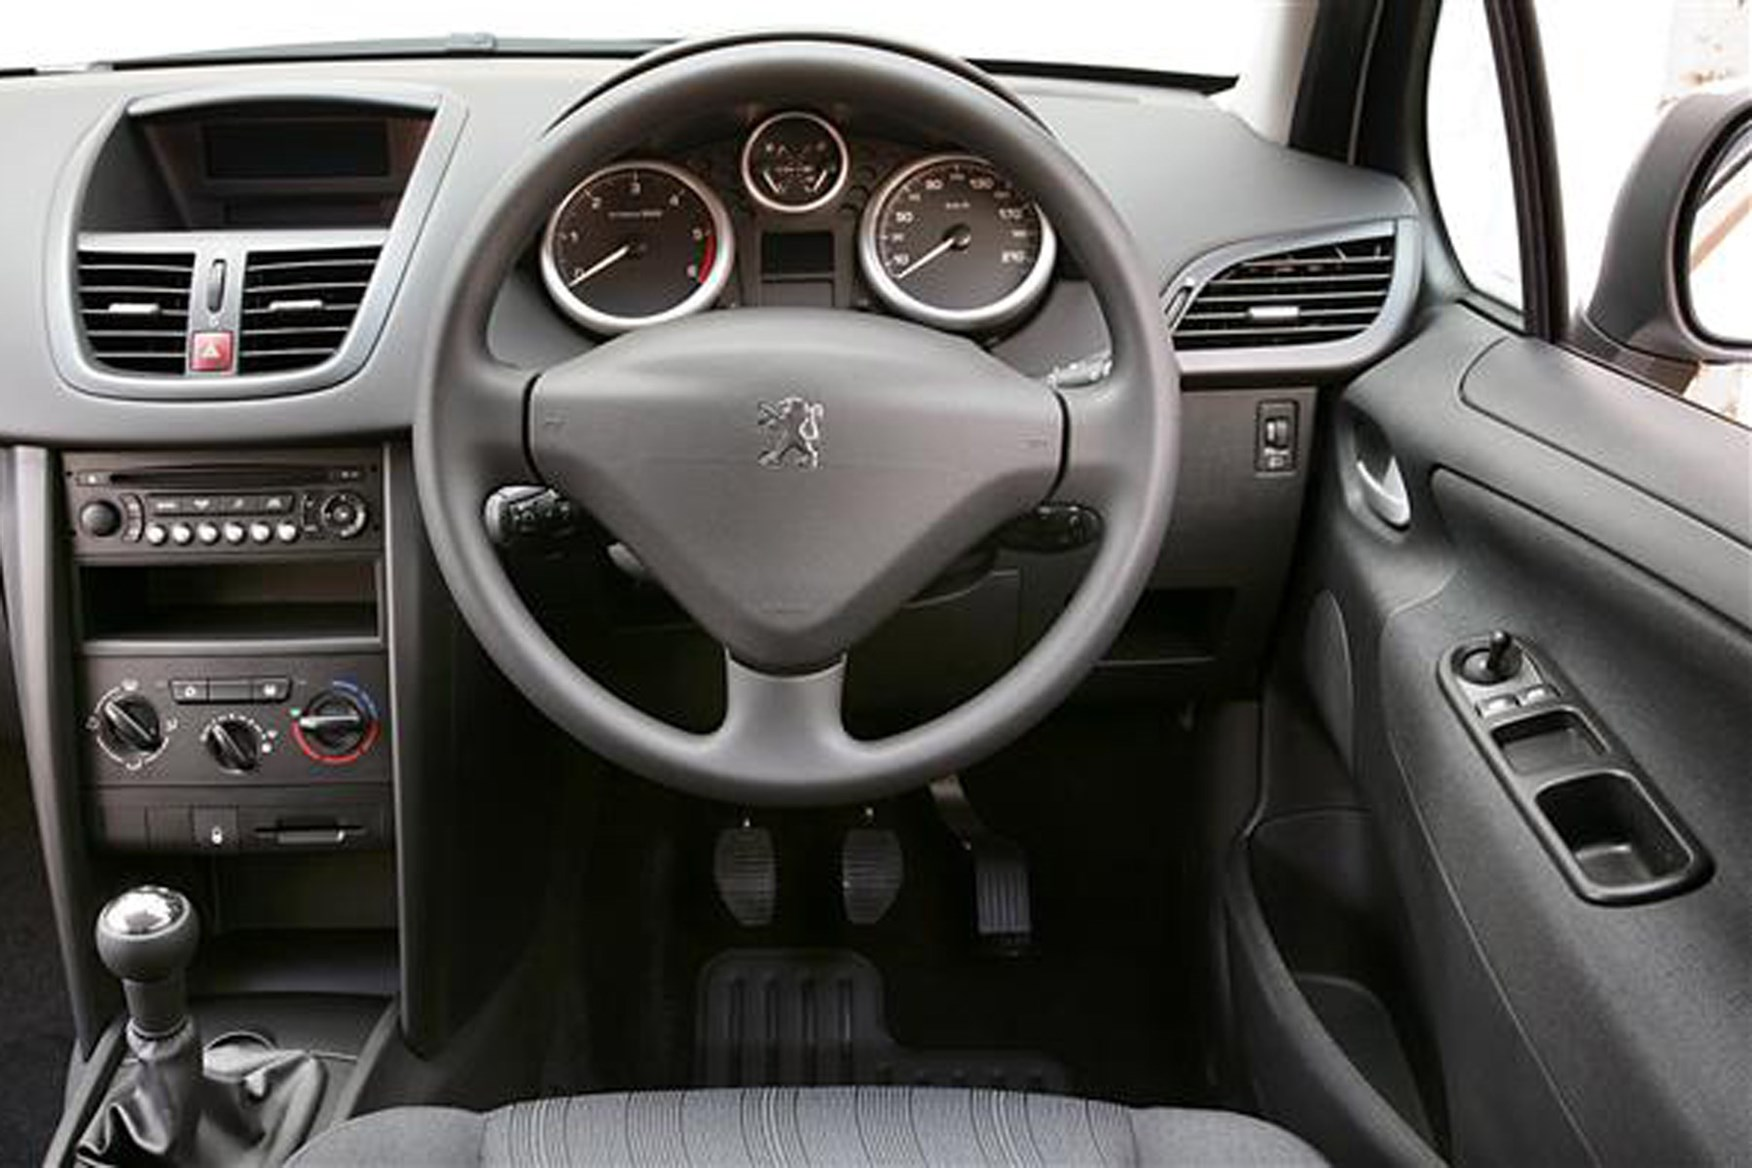 Peugeot 207 Van review on Parkers Vans - in the driver's seat